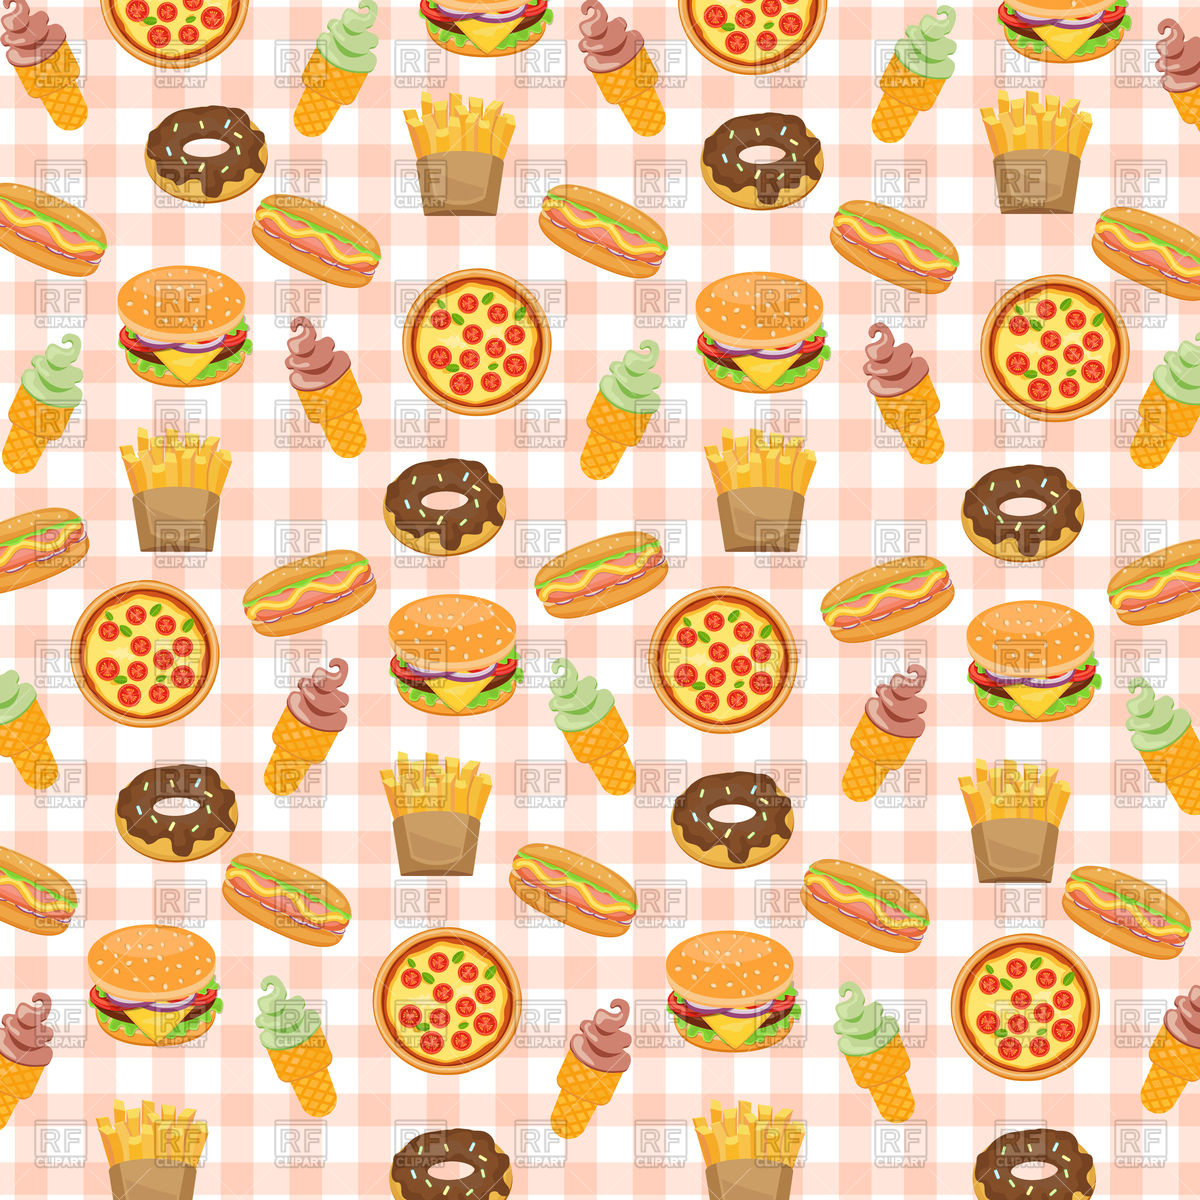 Fast food background with doughnut, hotdog, ice cream, burger.